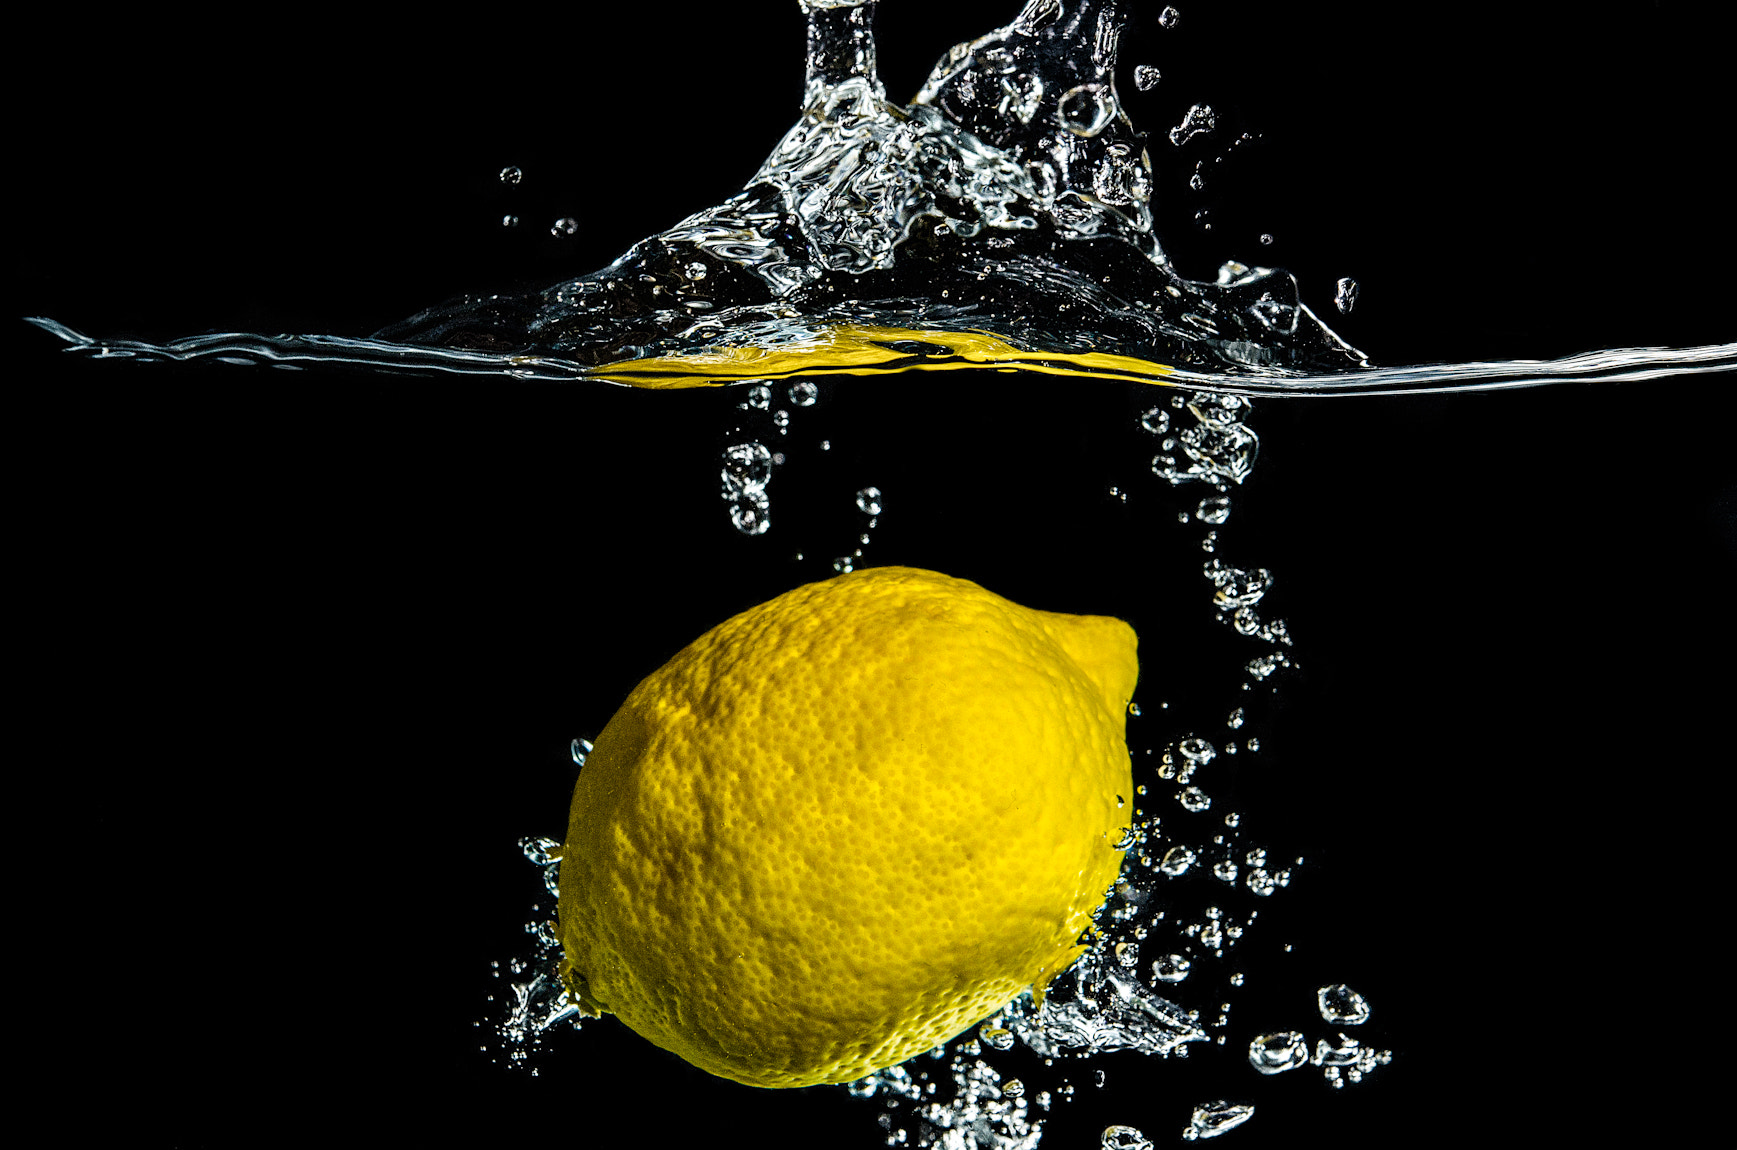 Photograph Lemon Drop 2 by Steve Good on 500px